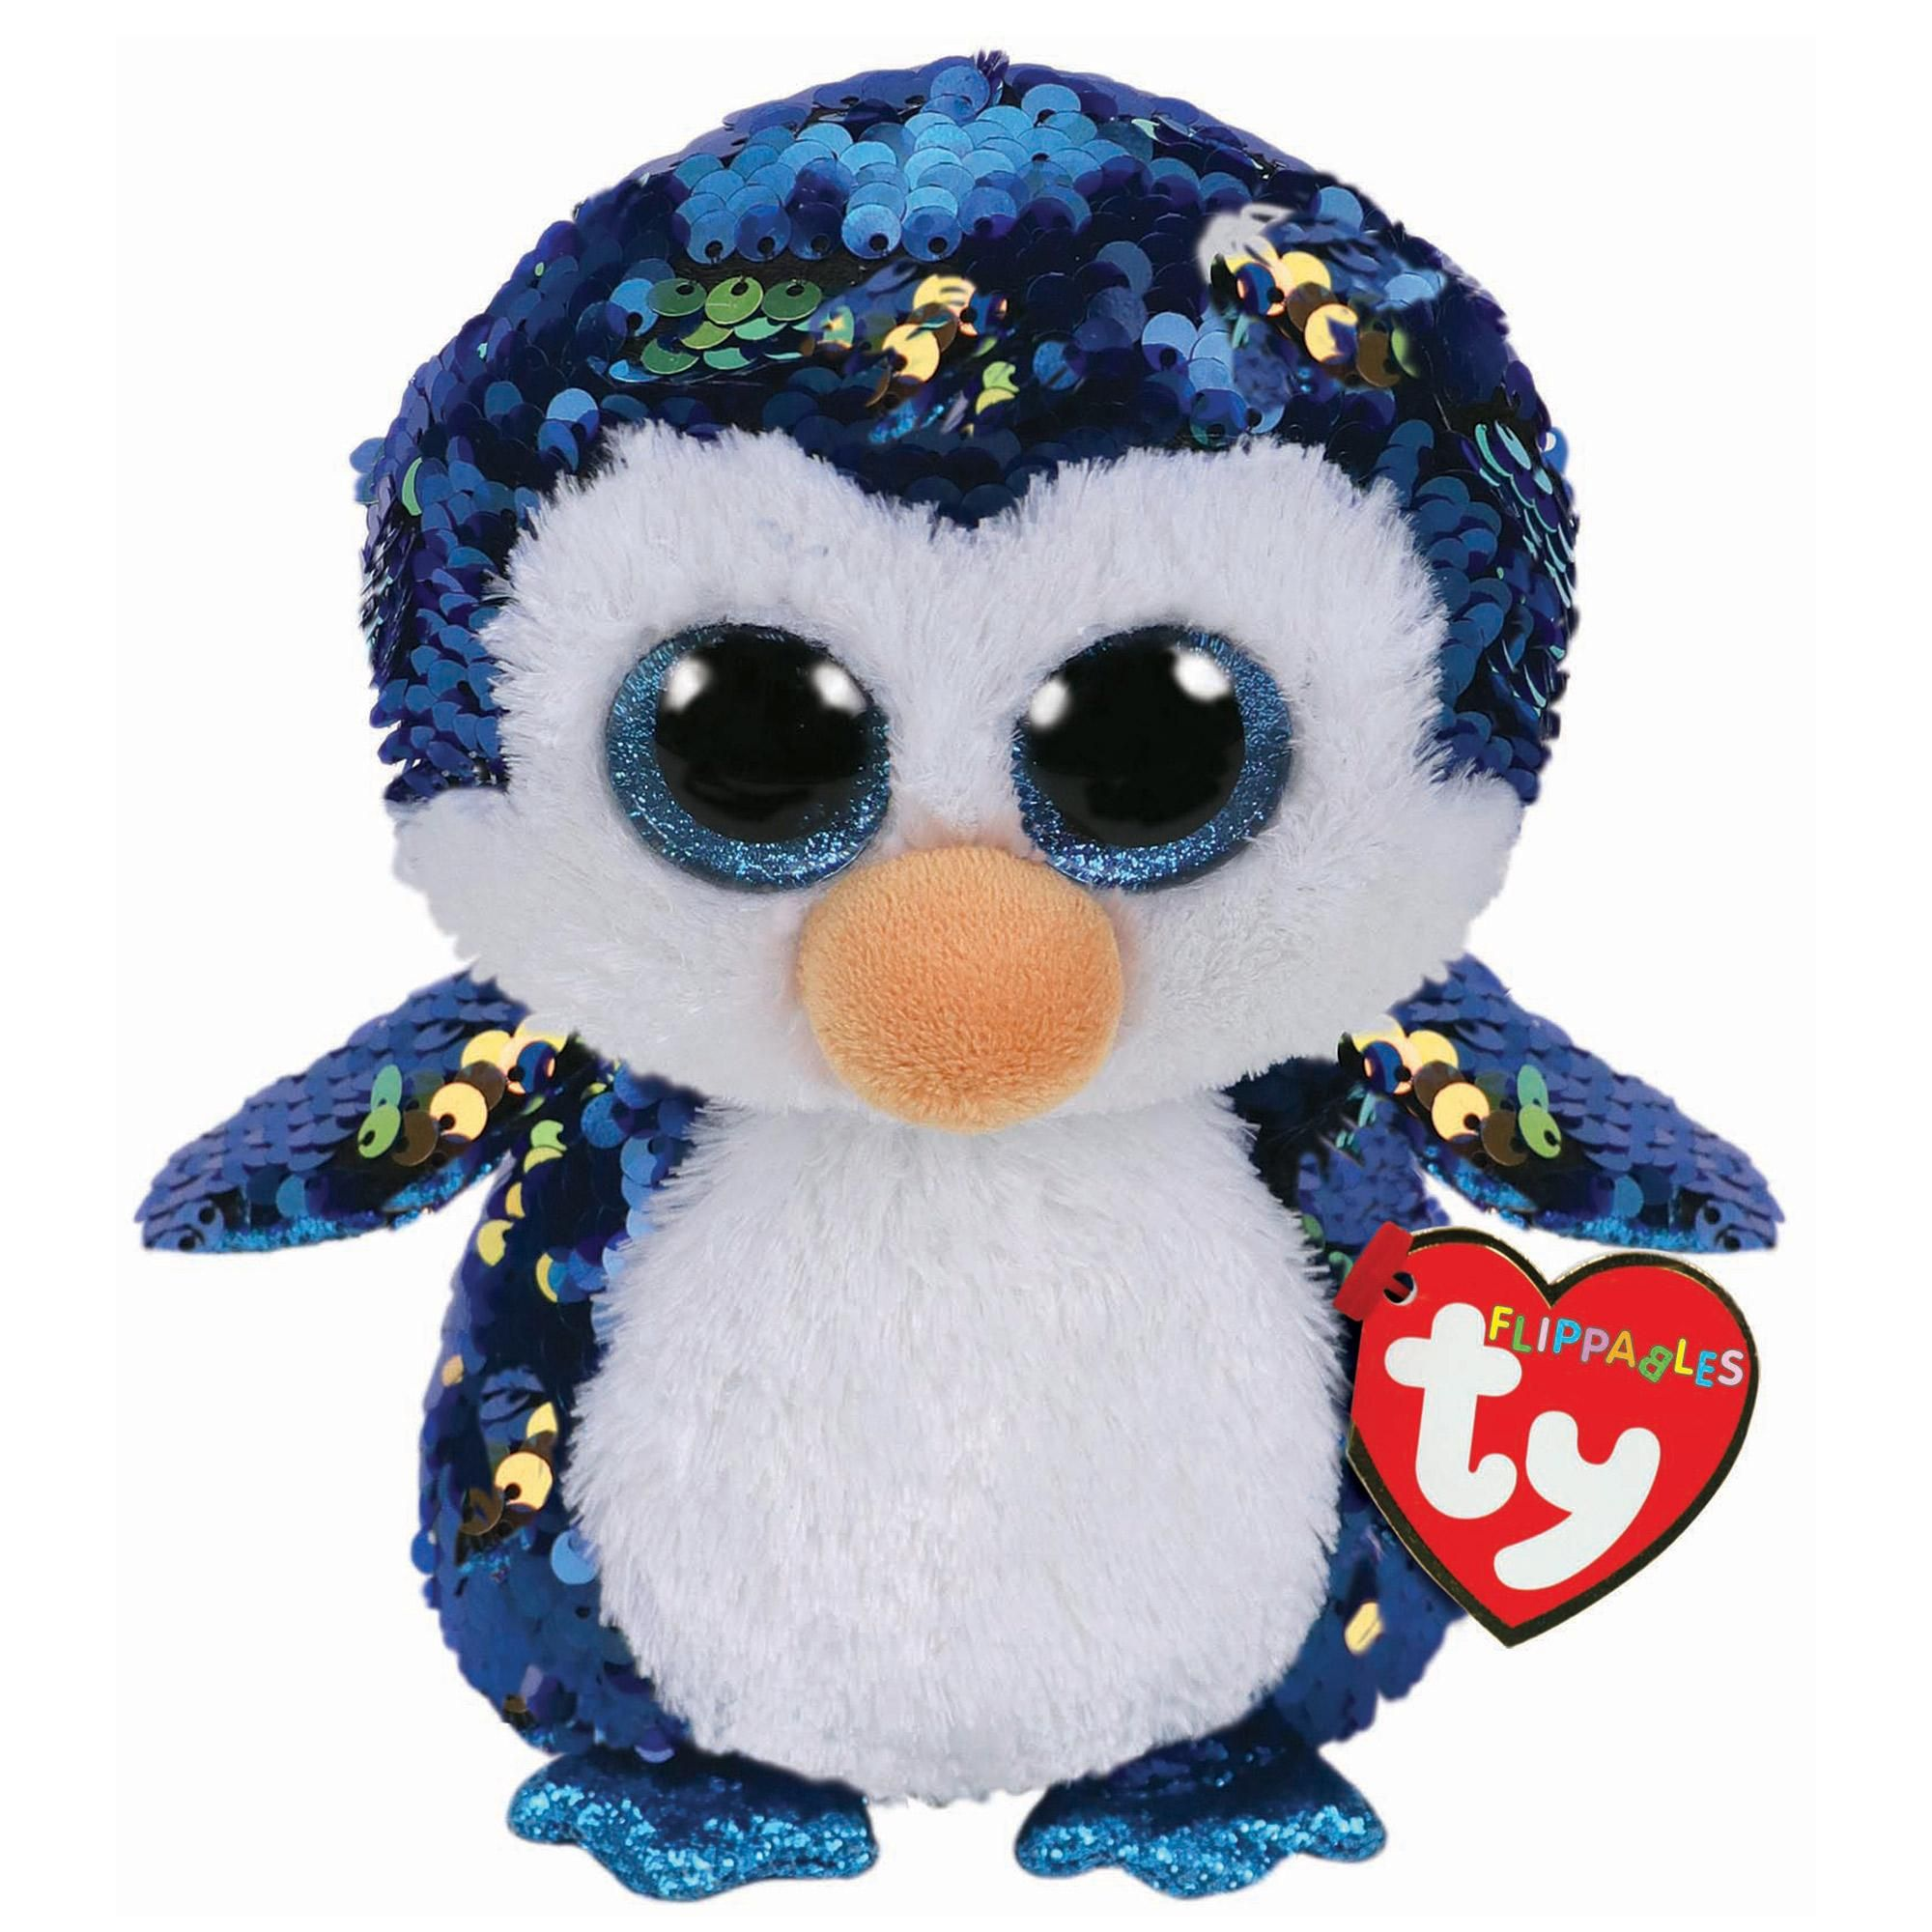 585efc8fb0f TY Payton Penguin Sequin Flippable Boo - £8.00 - Hamleys for Toys and Games